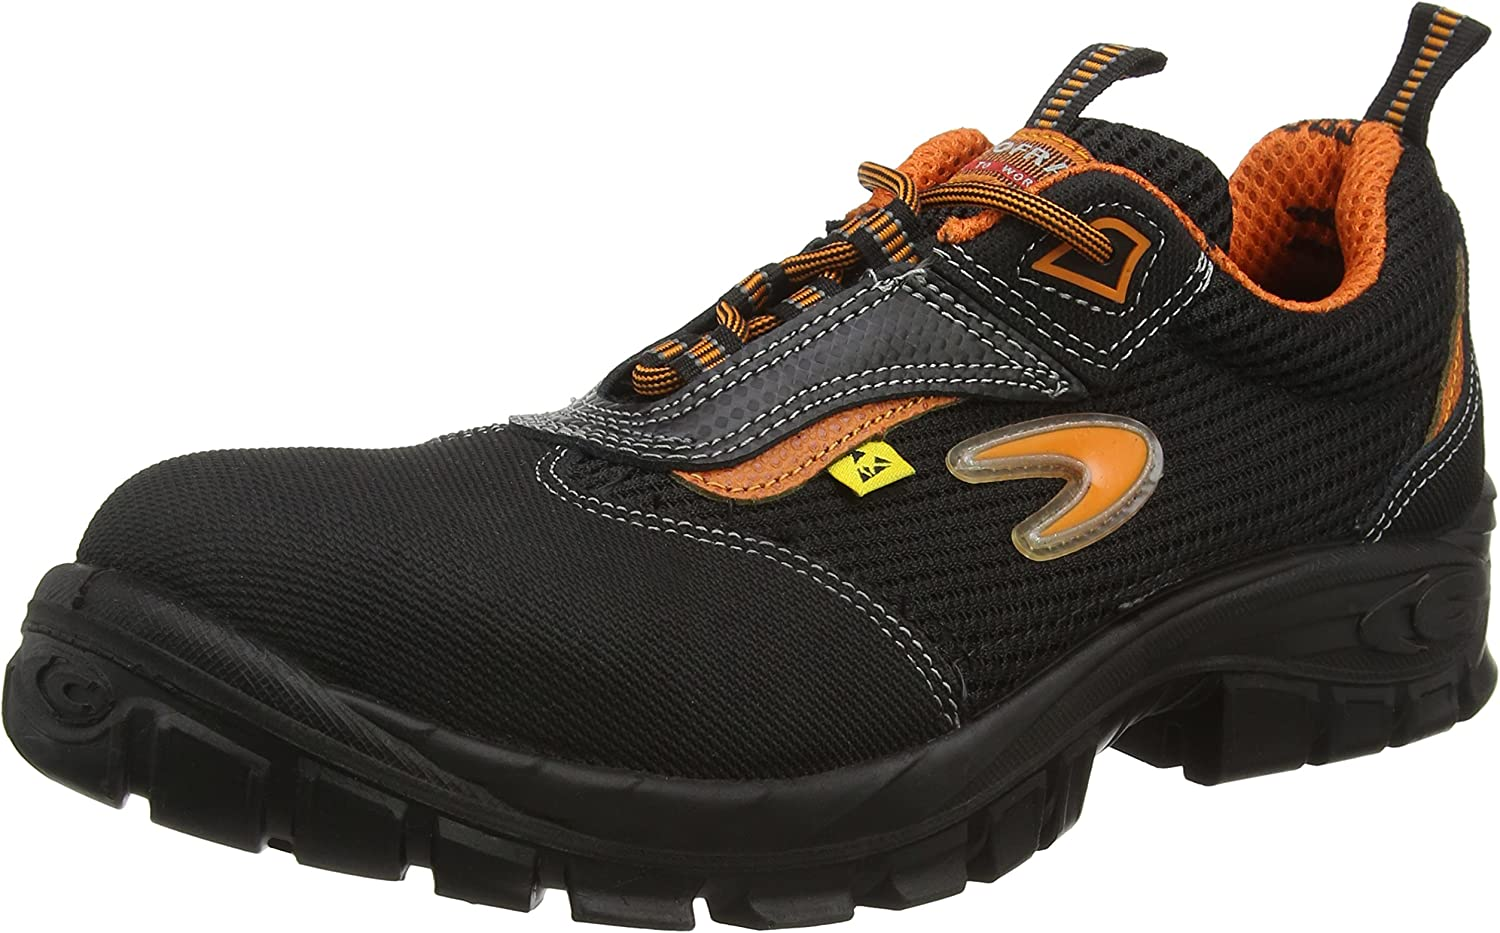 Cofra 13000-000.W42 Size 42 S1 P ESD SRC  Aegir  Safety shoes - Black orange - EN safety certified